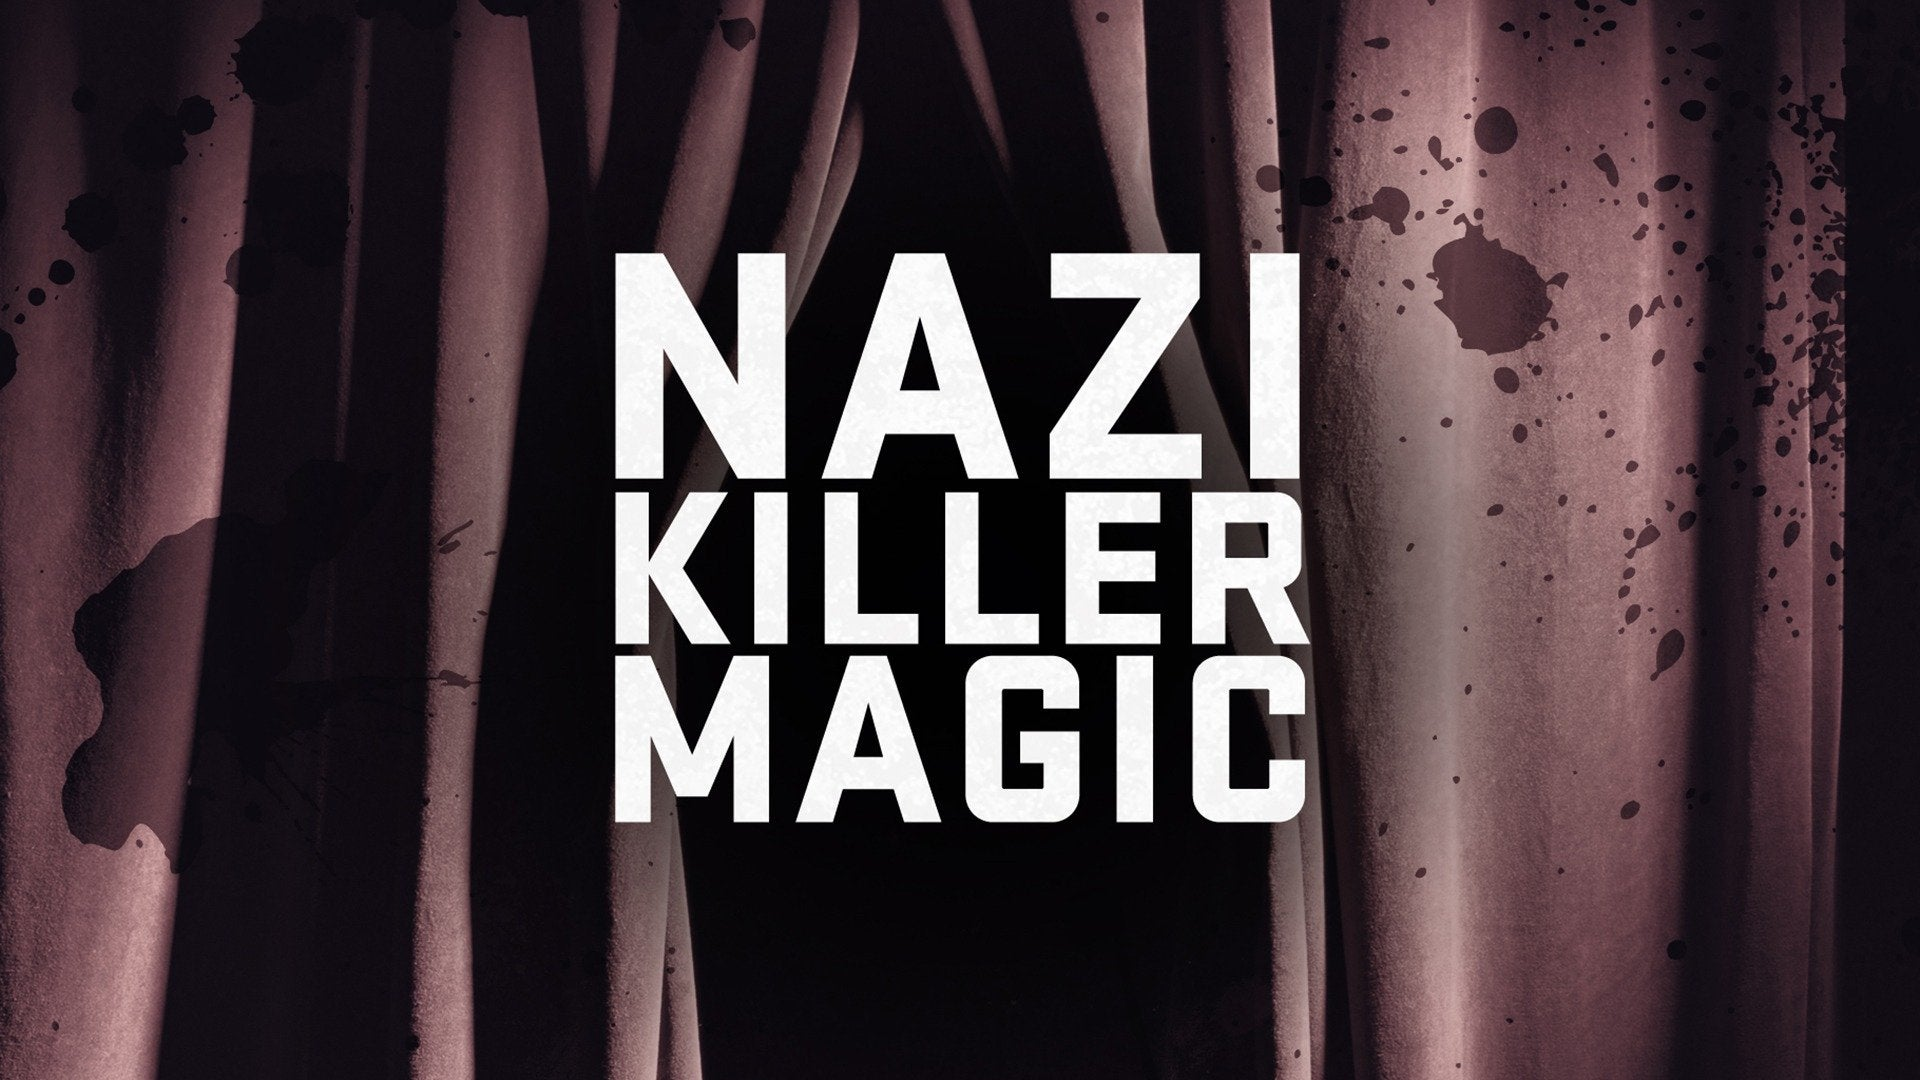 Nazi Killer Magic